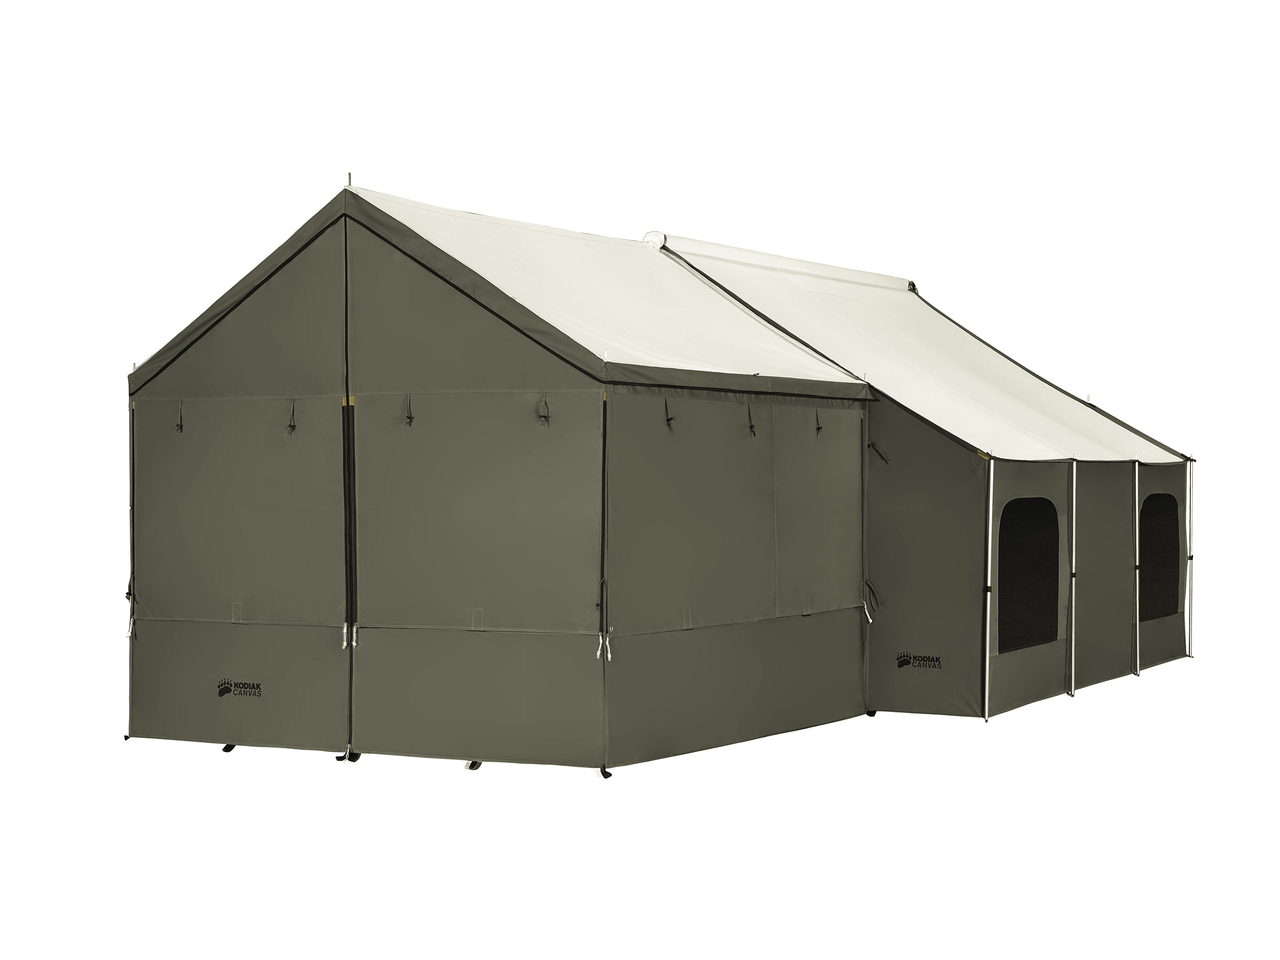 Windows shut. Show with Cabin Lodge Tent (Sold Separately).